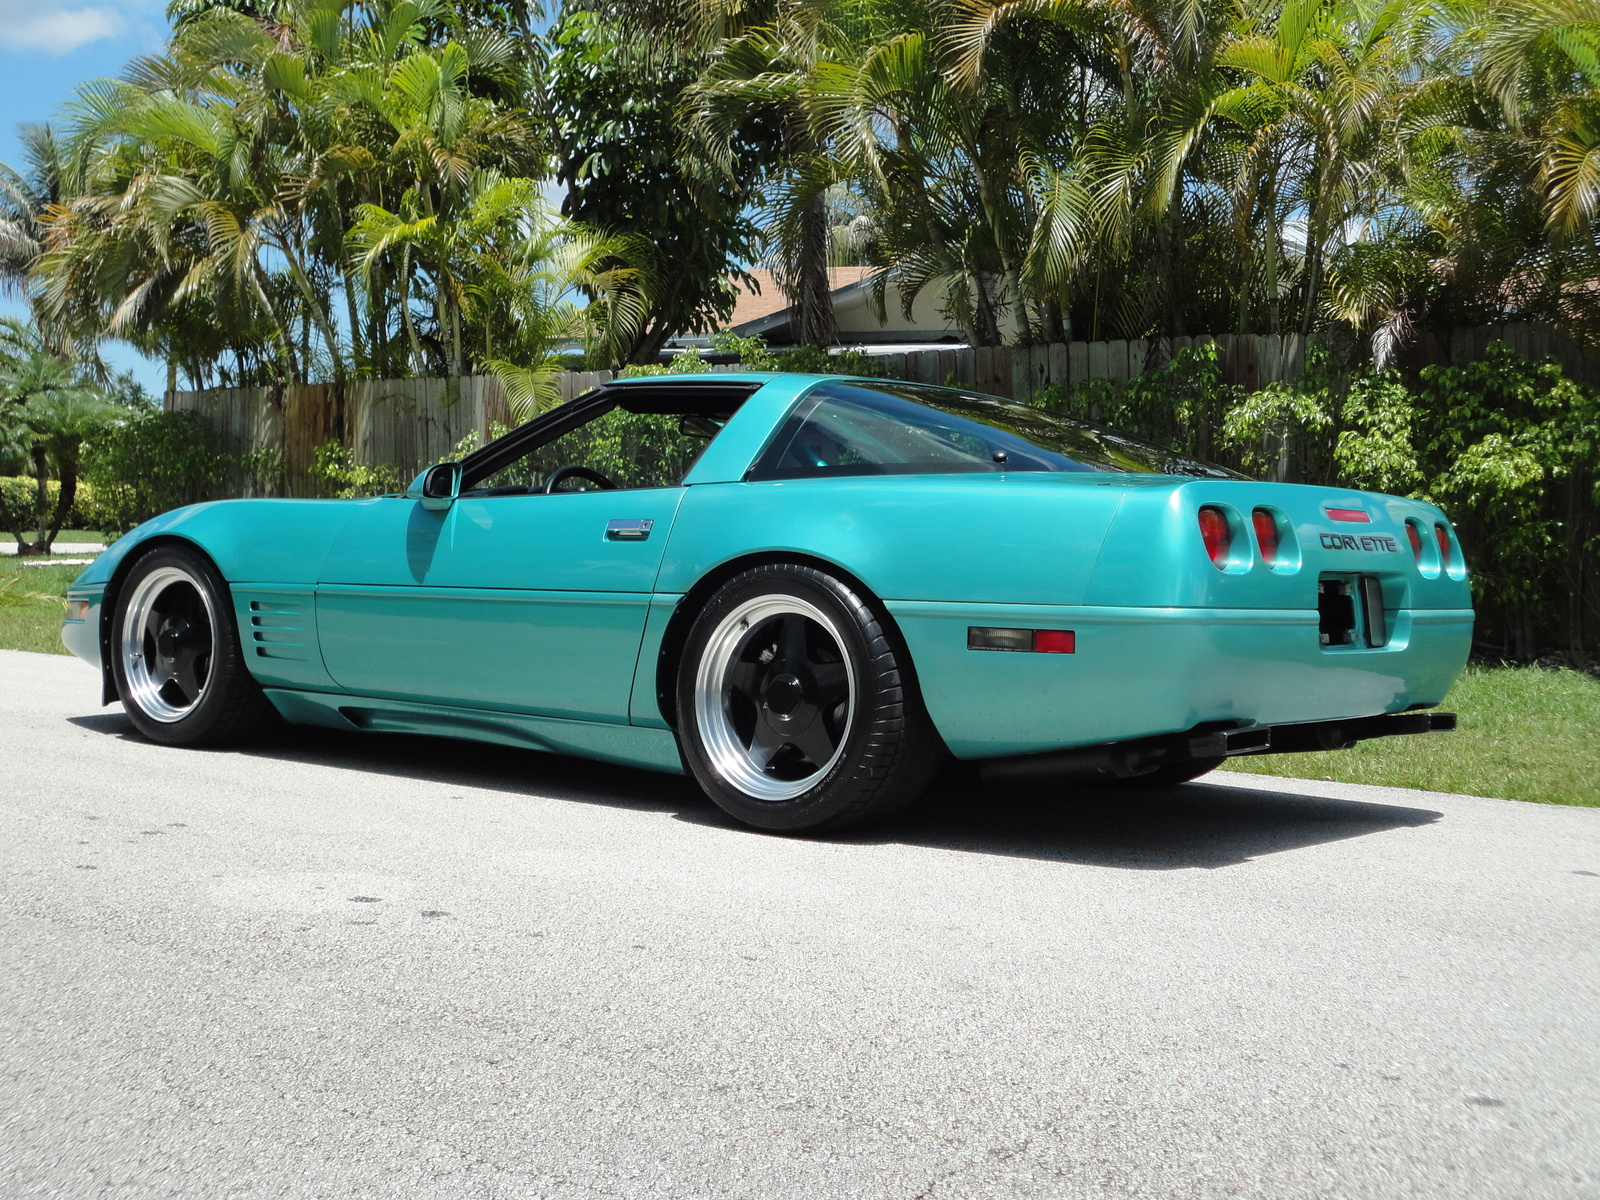 Pontiac Firebird History 3rd Generation besides 21307 Chevrolet Chevette 1976 furthermore 1991 Chevrolet Corvette Pictures C418 pi36010124 as well Watch likewise Greencar. on 1984 chevy camaro